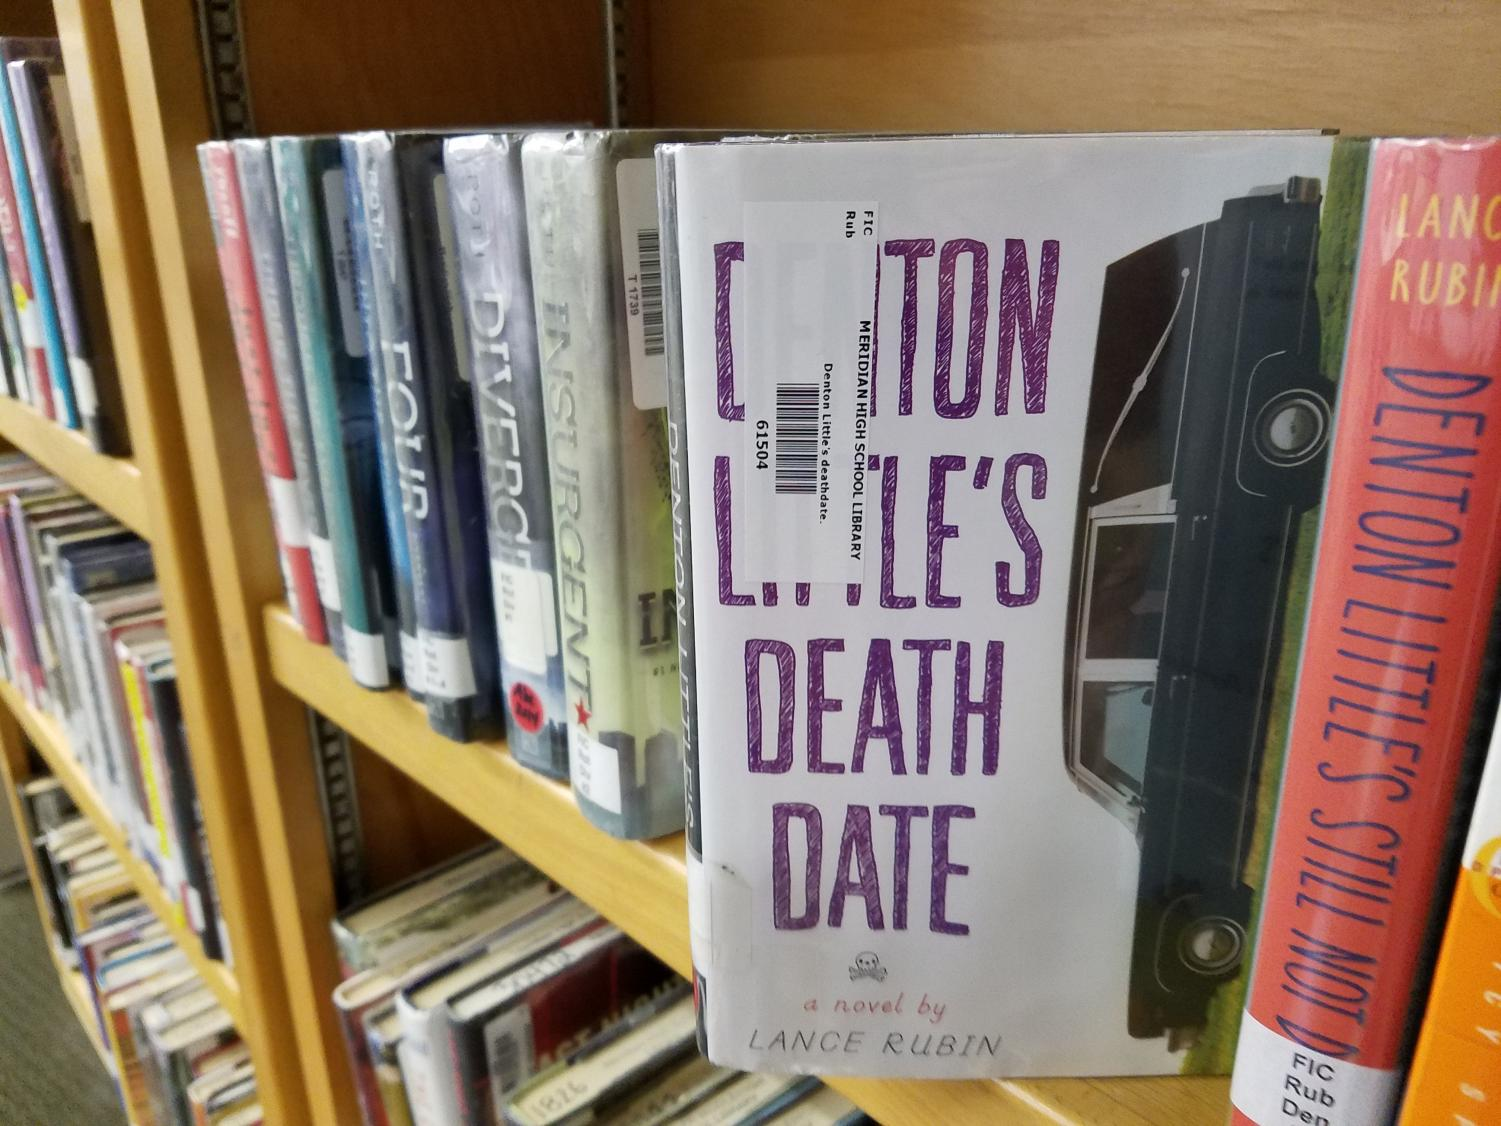 Available. Denton Little's Death Date is sitting at the MHS library ready to be checked out.